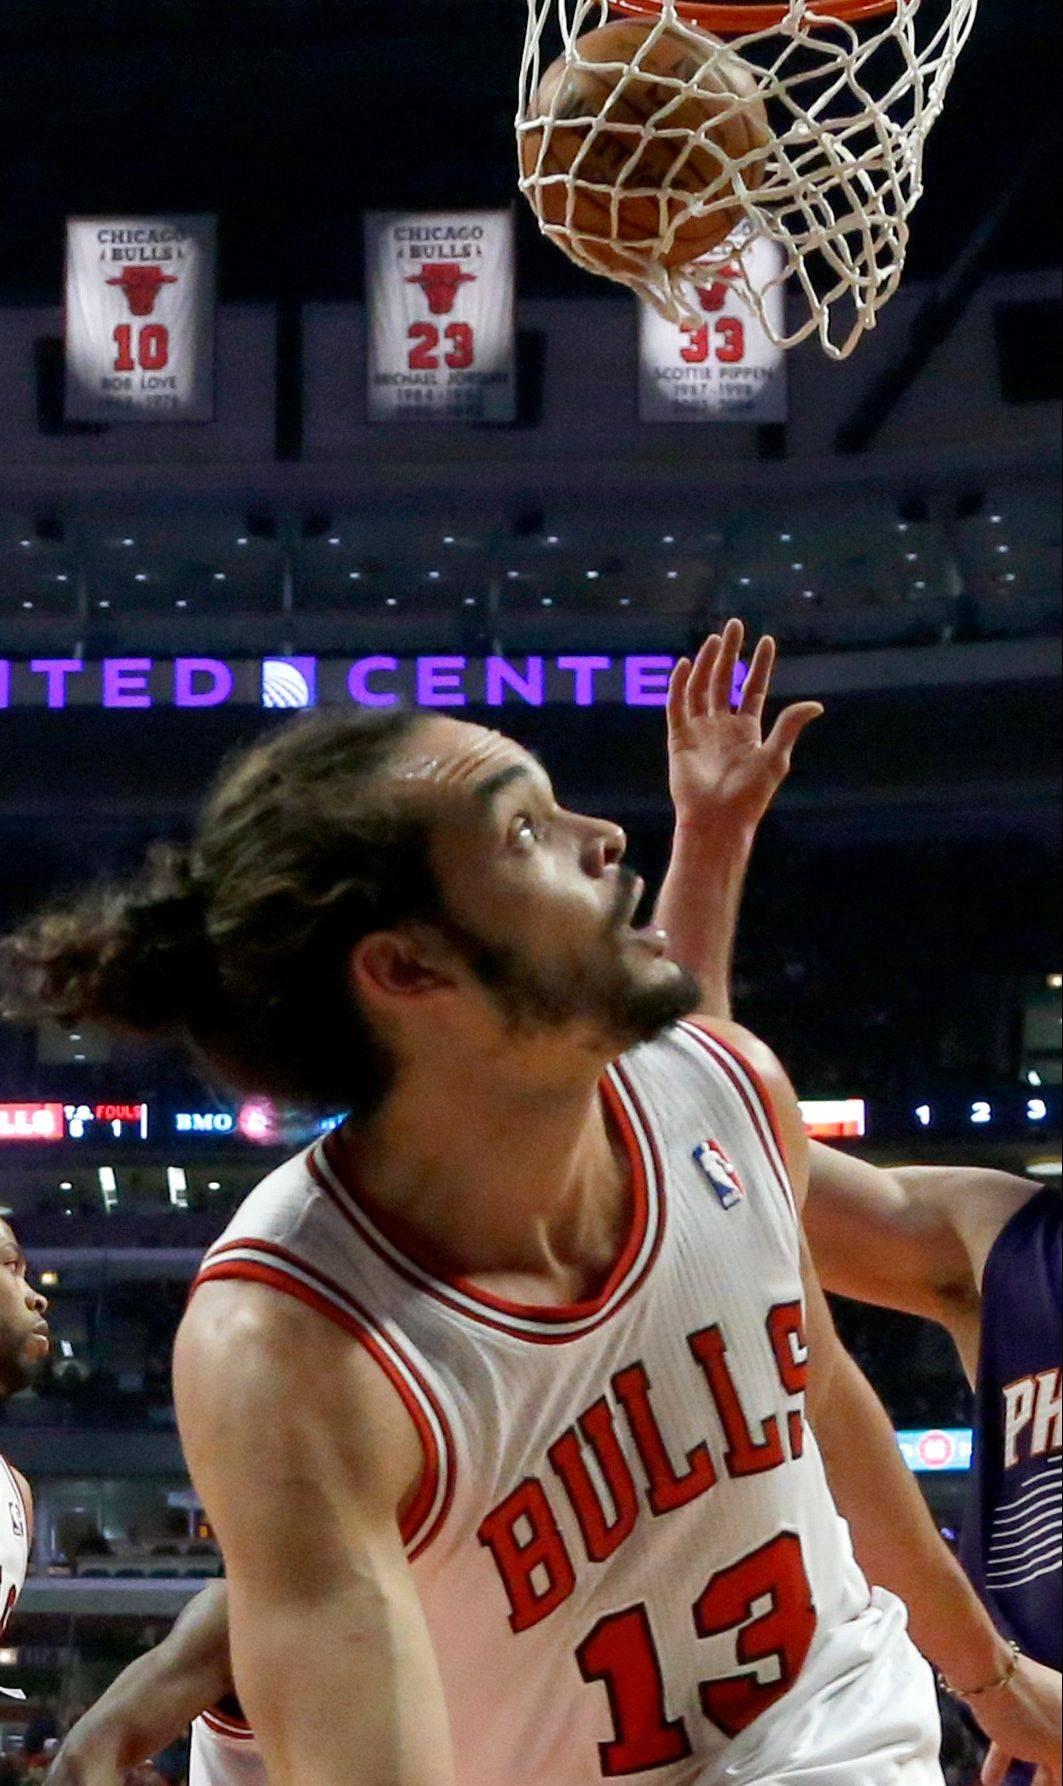 Luol Deng's gone, but there's no looking back for Joakim Noah and the rest of the Bulls, who should still make a run at the playoffs.